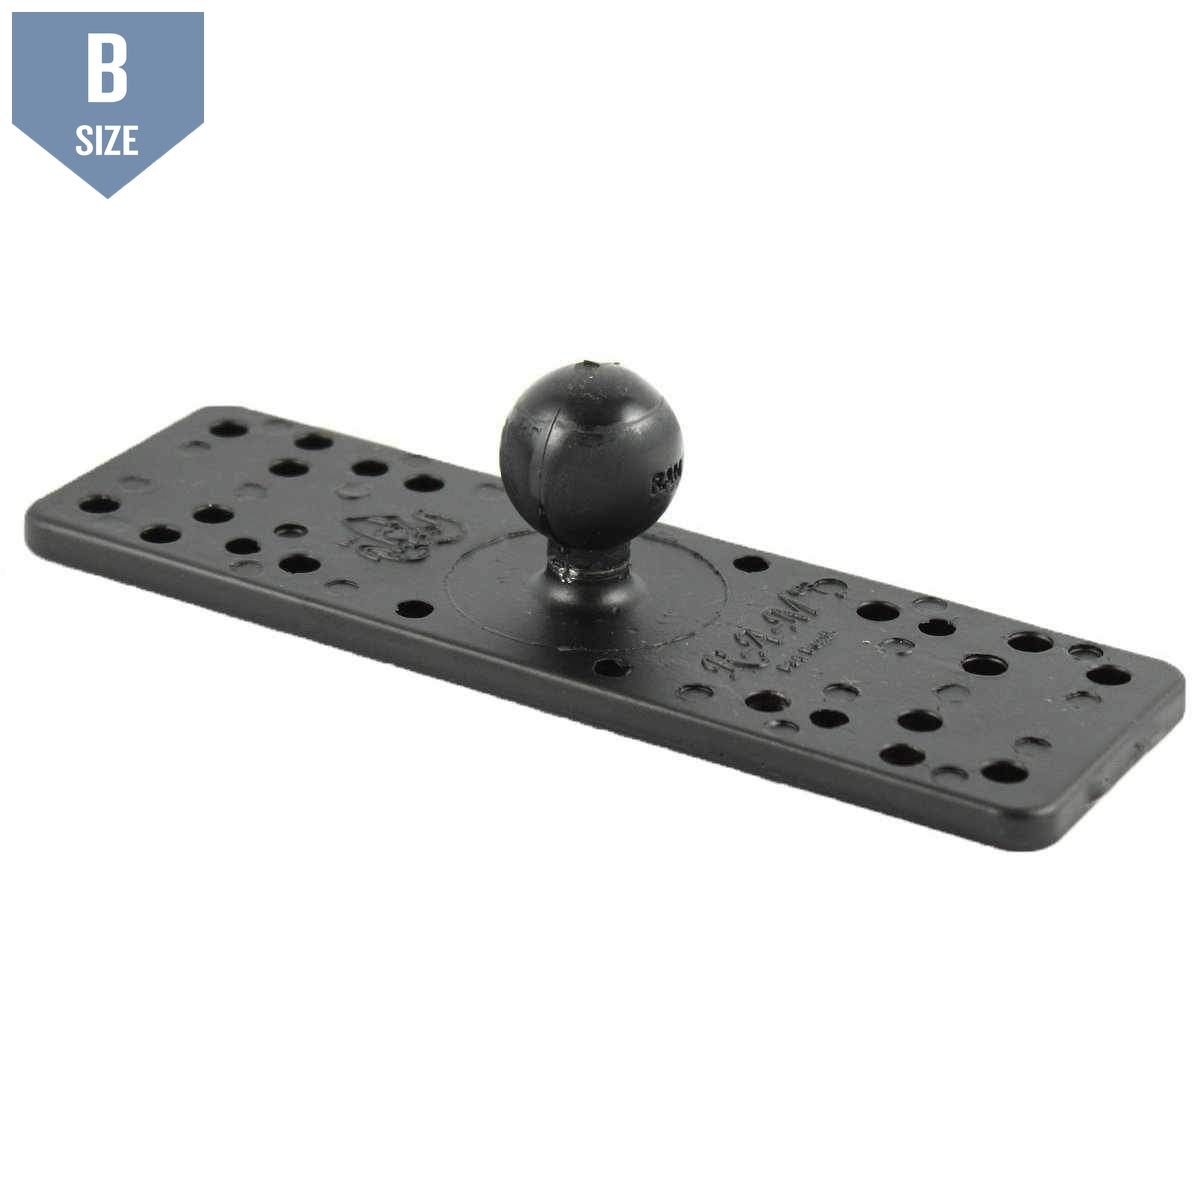 "RAM 6.25"" X 2"" Rectangle Base with 1"" Ball (RAM-B-111BU)"